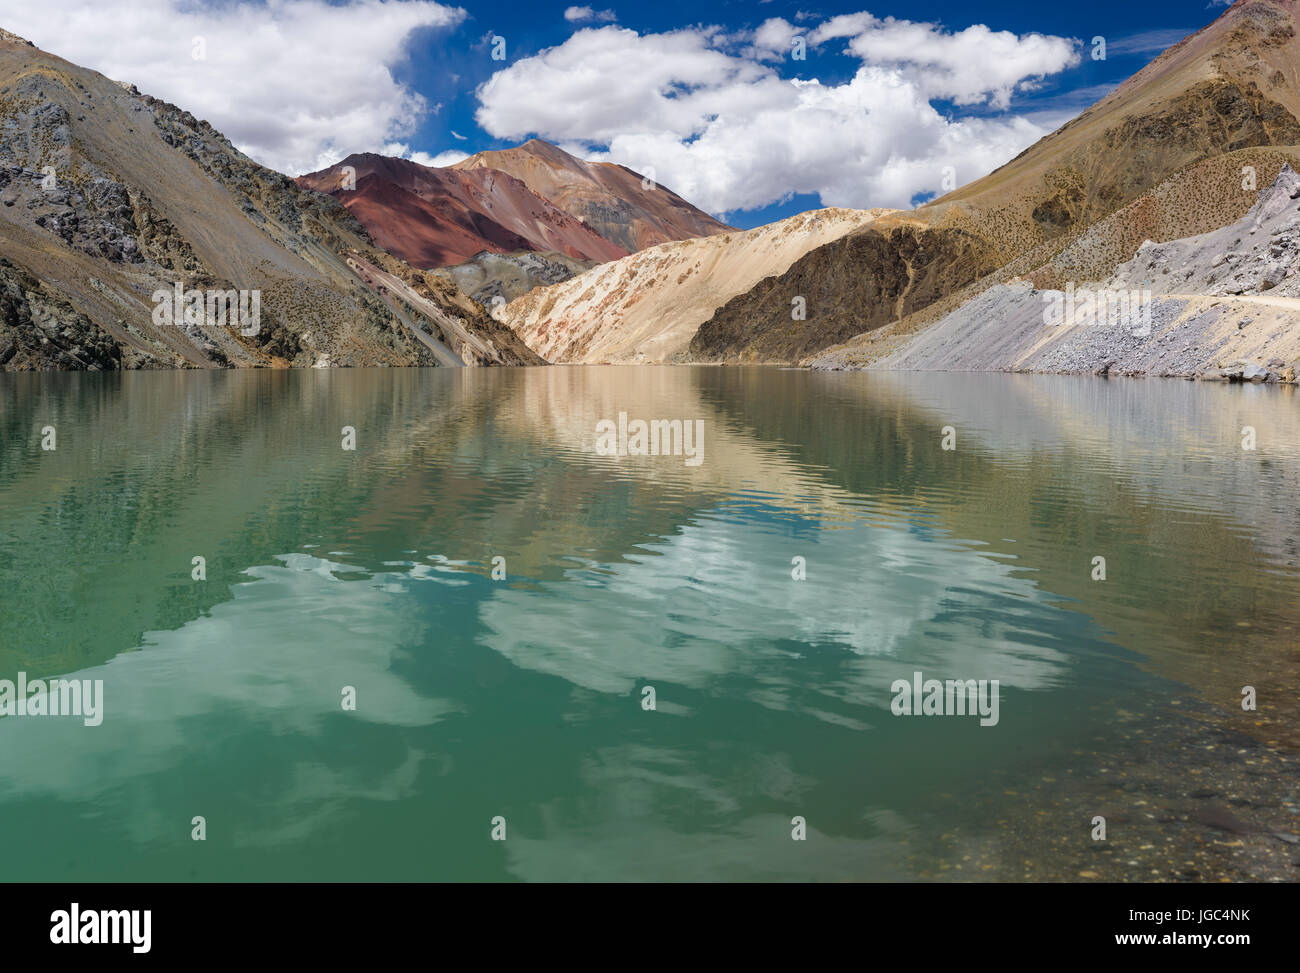 Agua Negra pass, Andes, Chile Argentina - Stock Image